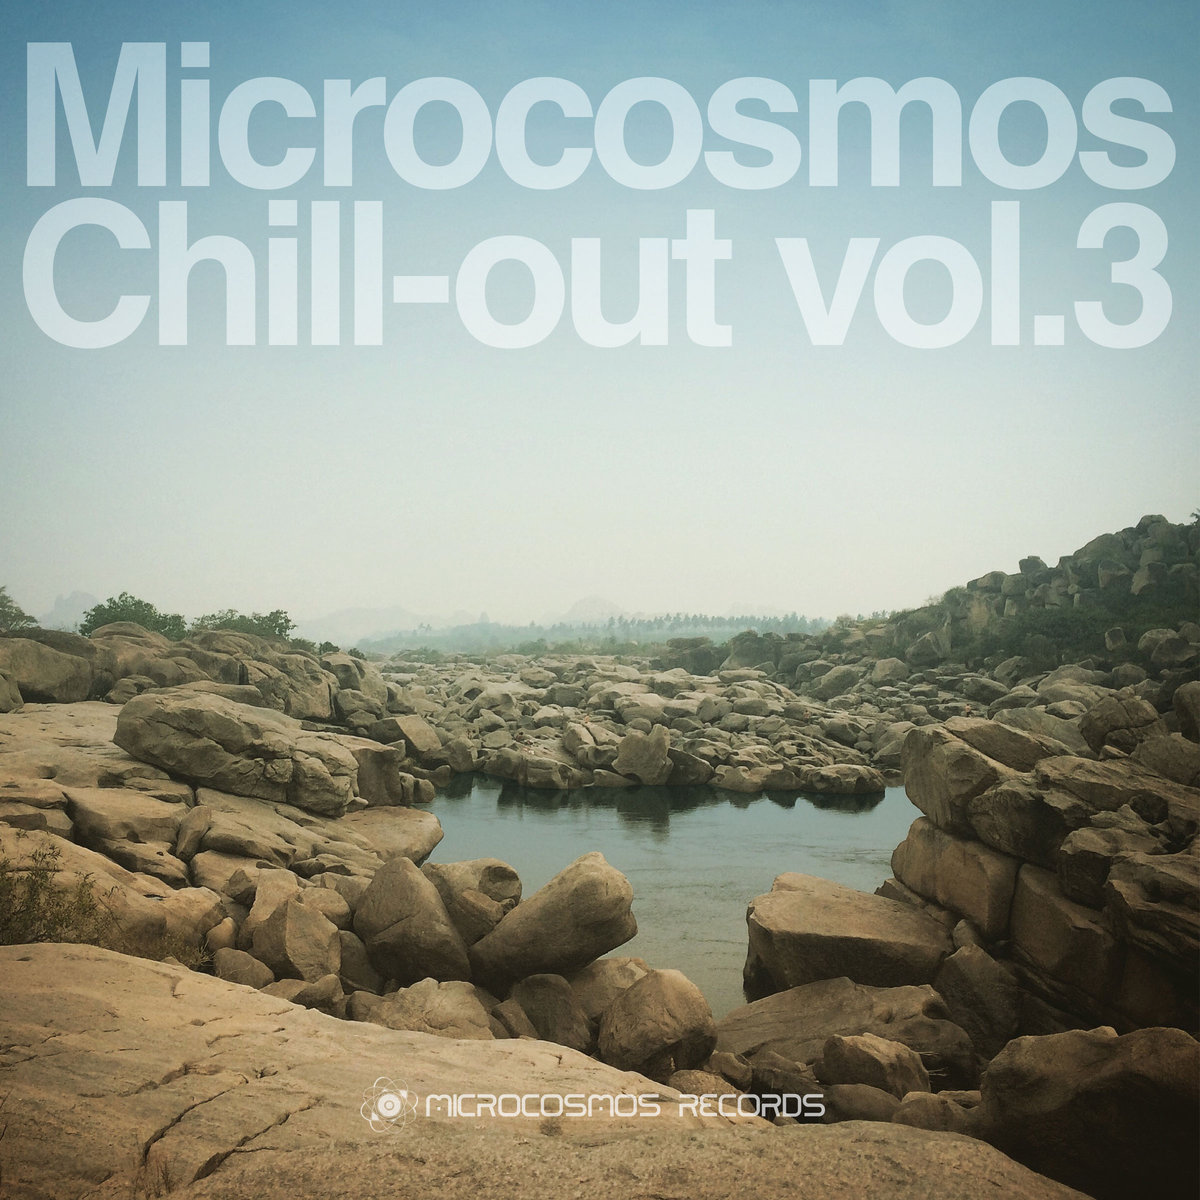 Armageddance - Sky Ocean @ 'Microcosmos Chill-out Vol.3' album (ambient, chill-out)